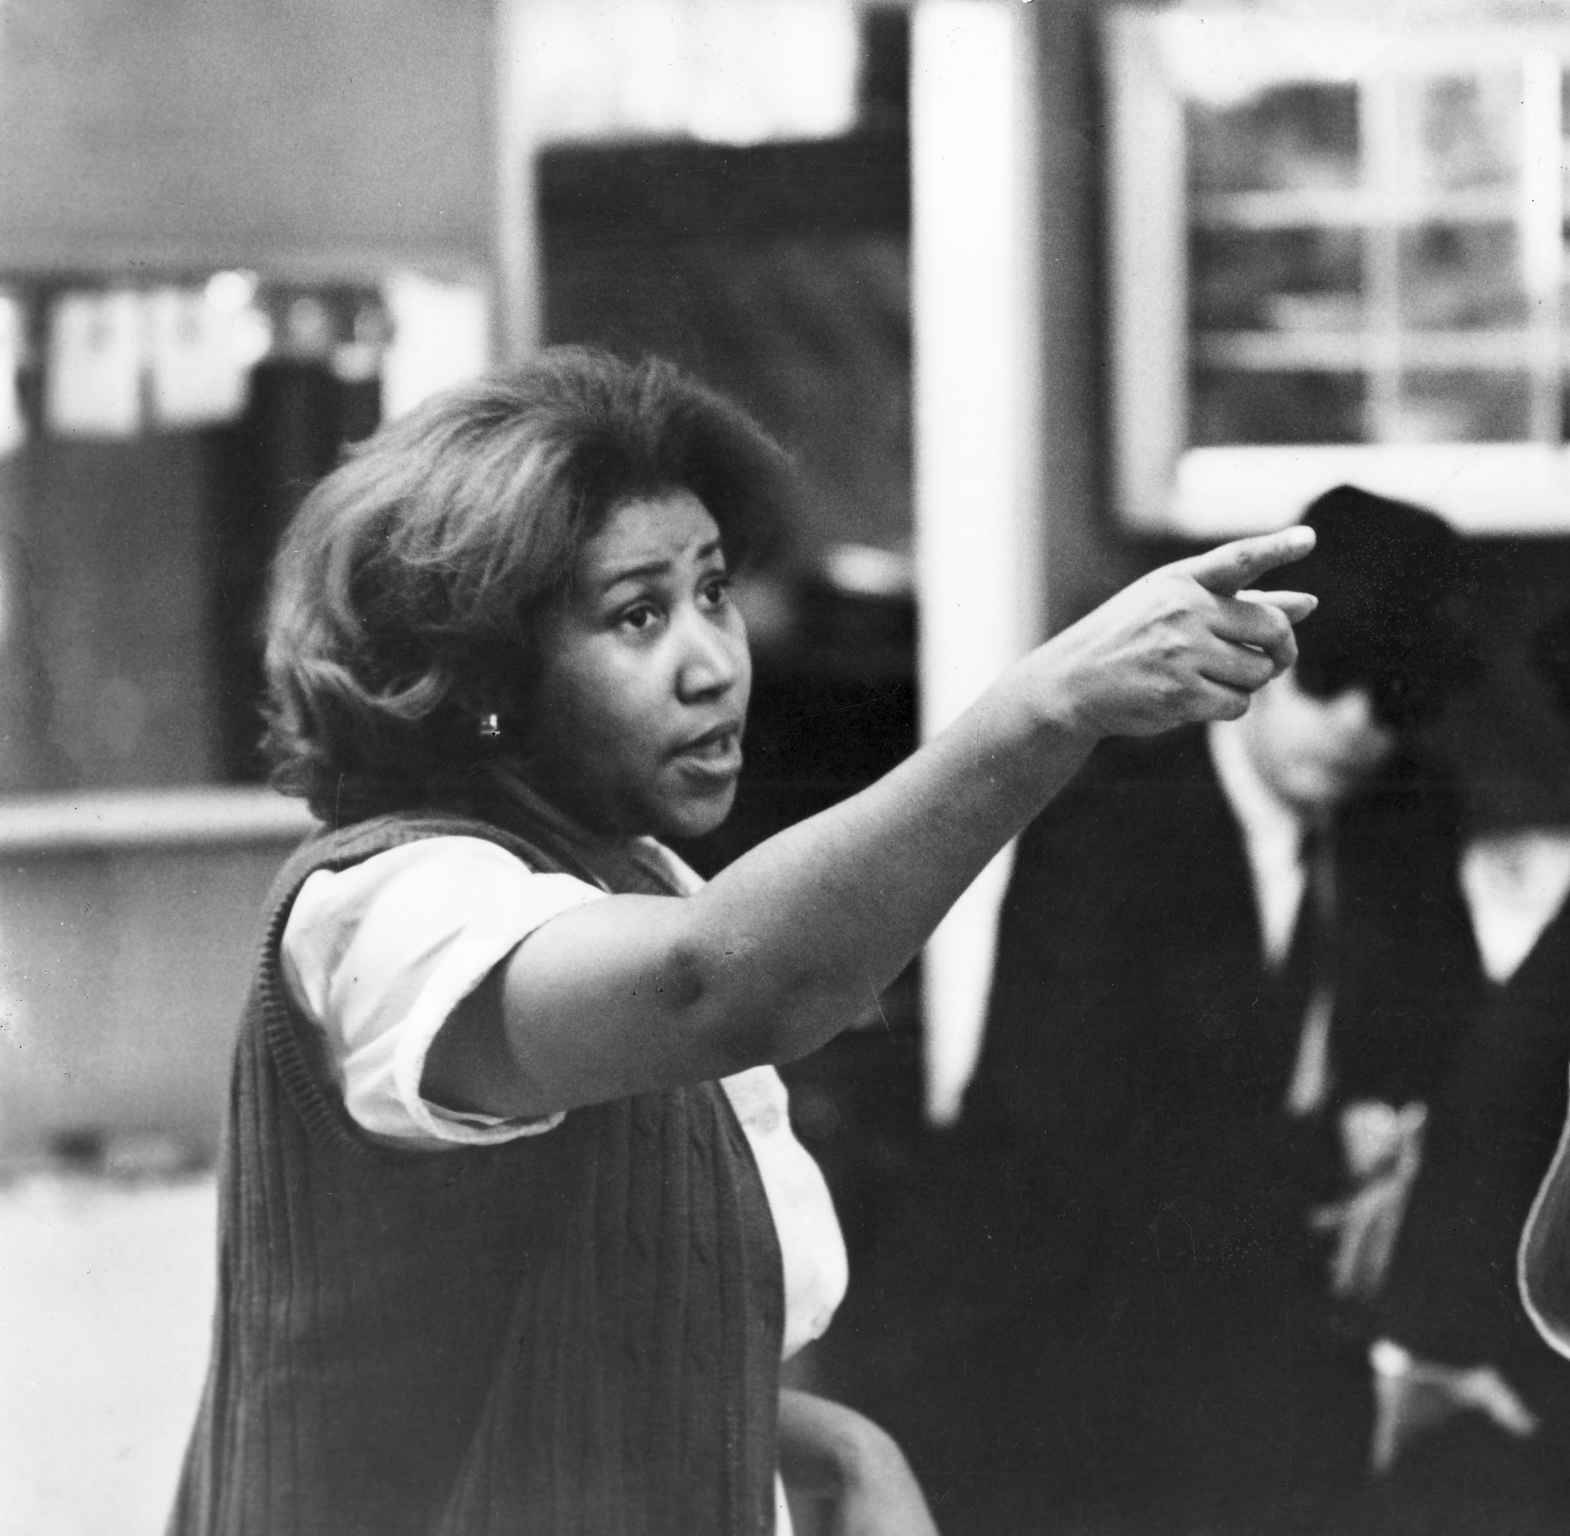 THE BLUES BROTHERS [US 1980] ARETHA FRANKLIN THE BLUES BROTHERS [US 1980]  ARETHA FRANKLIN     Date: 1980